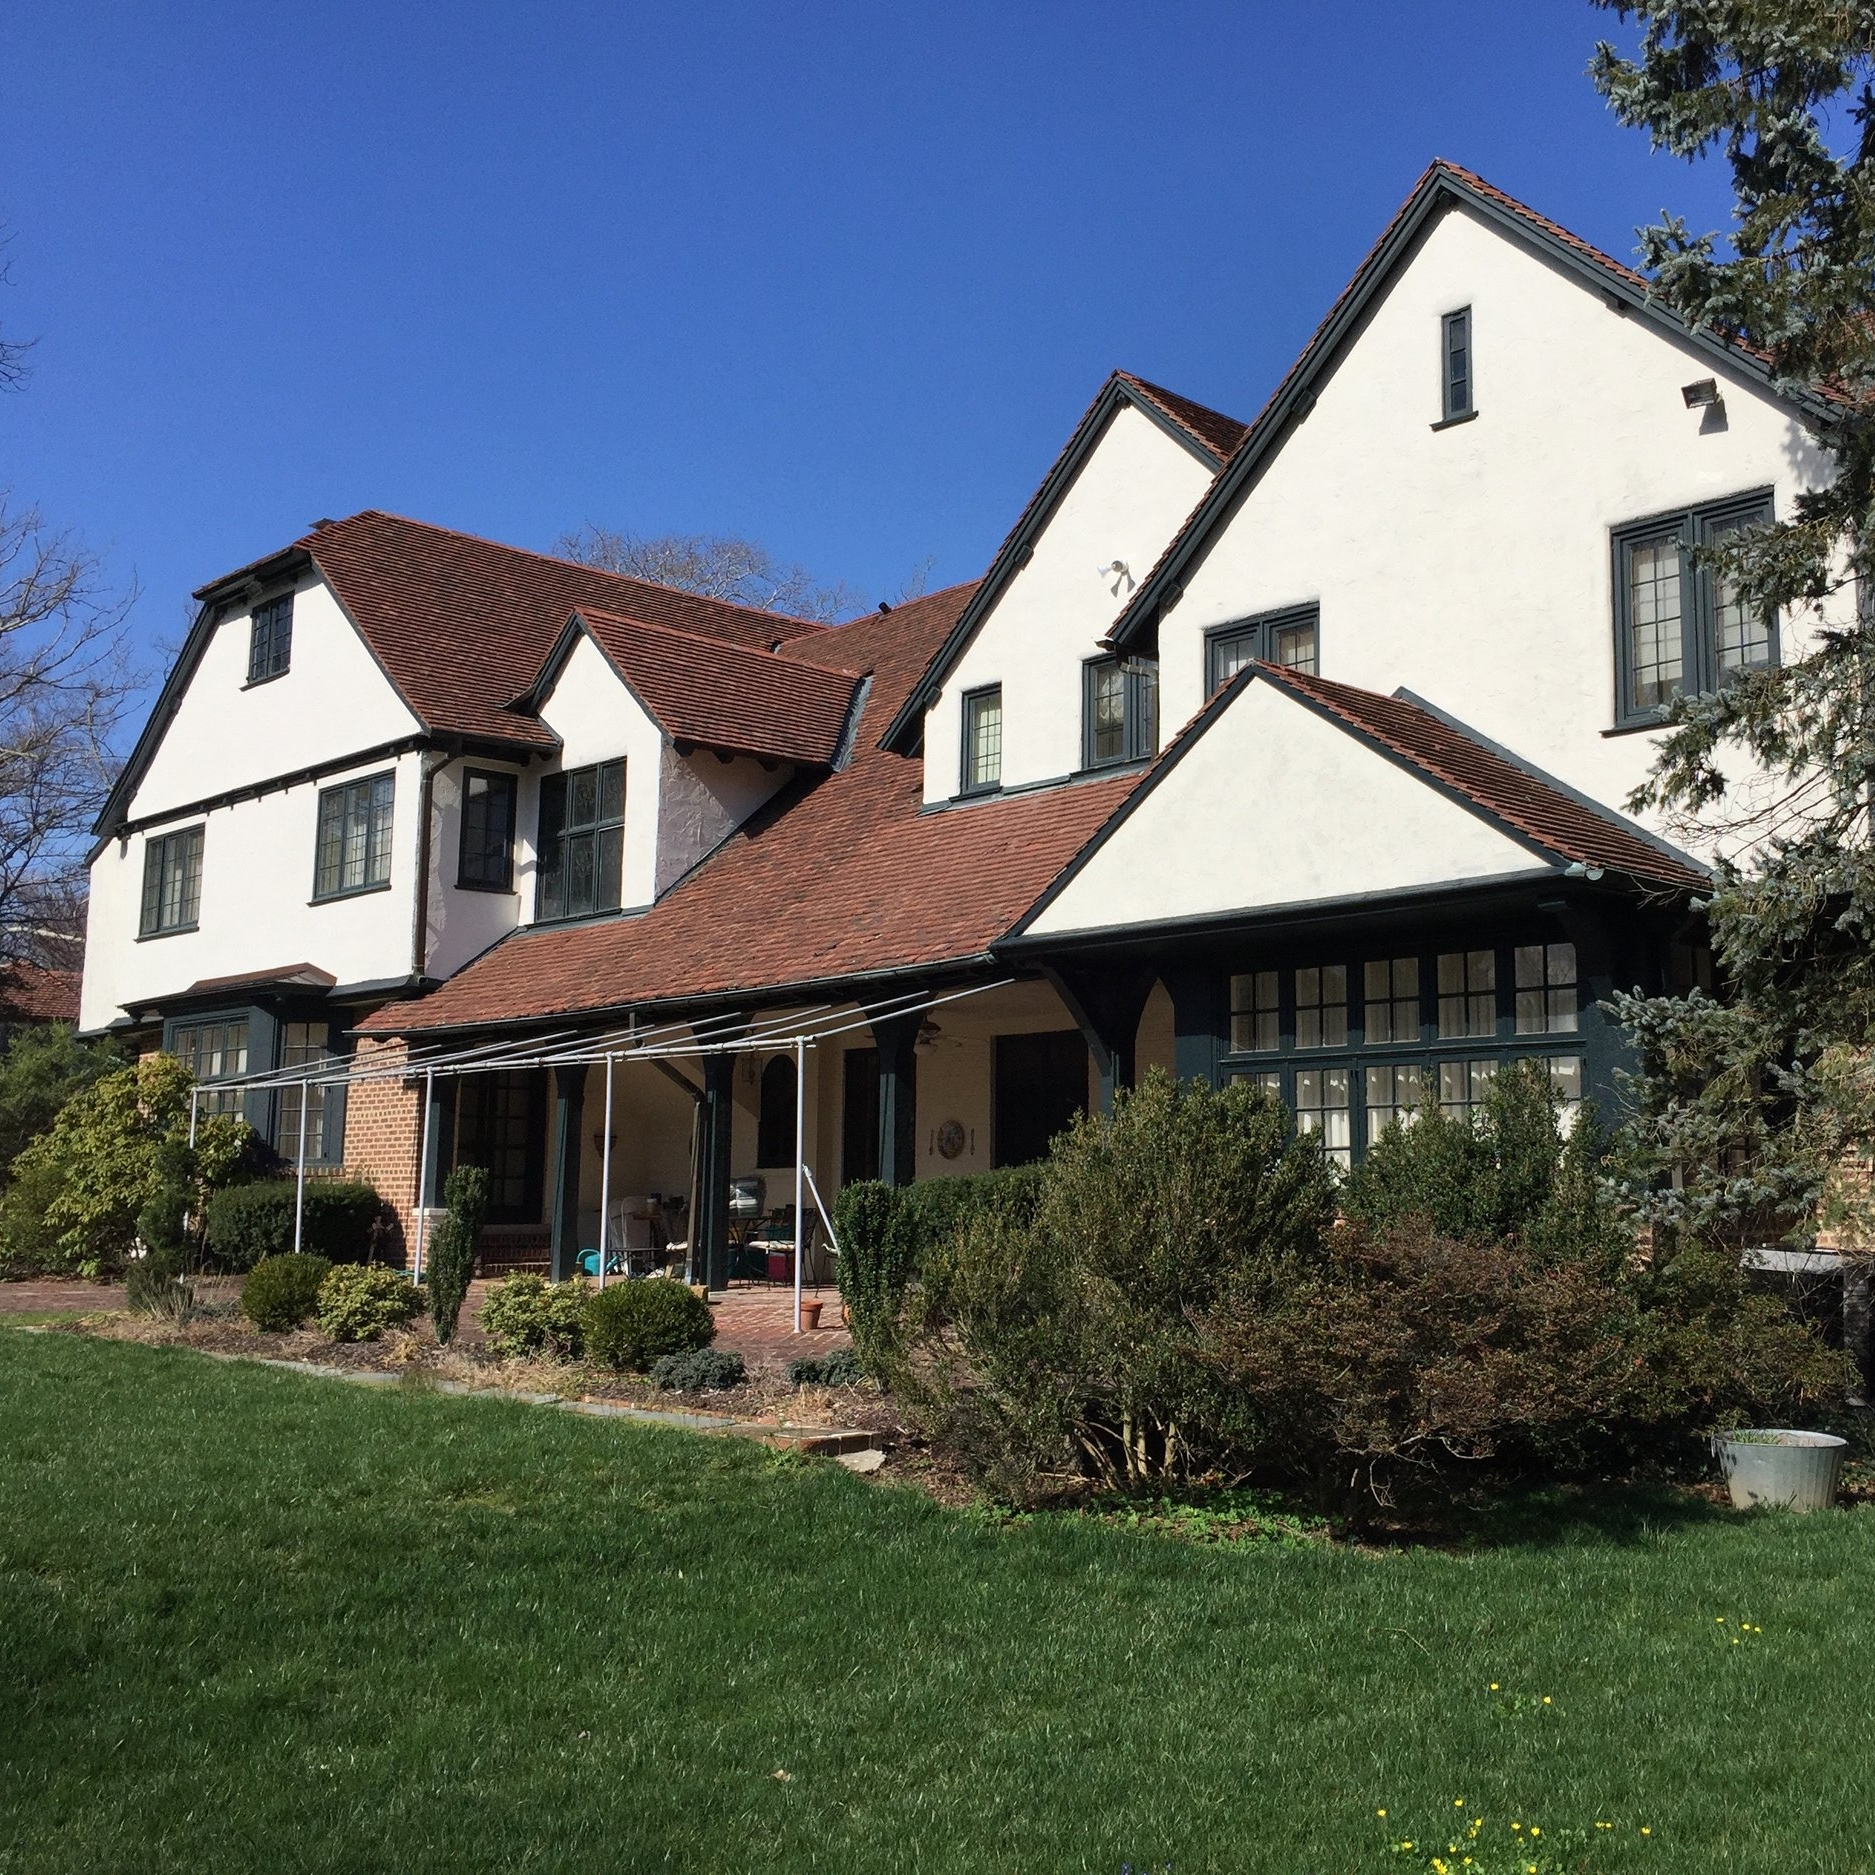 """Rehabilitated this historic terracotta roof designed by Wilson Eyre – a renowned Philadelphia architect, who, on this former country house, in Rosemont, had roughened the vertical enclosure by flipping the flat, """"fire-skinned"""" tiles over onto their grooved, mold-pressed sides."""